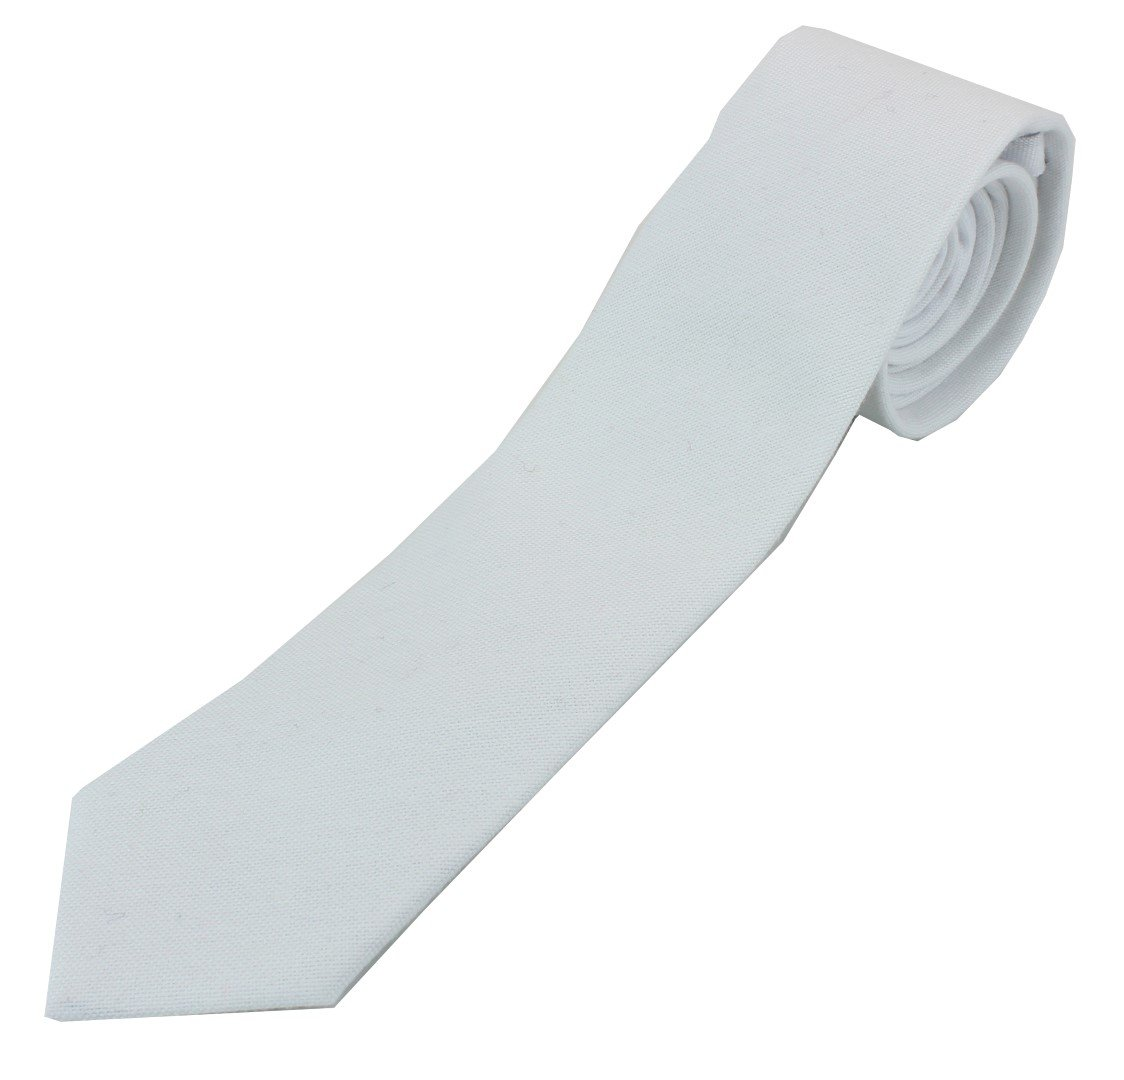 Men's Cotton Skinny Necktie Tie Bright Oxford Weave Pattern - White